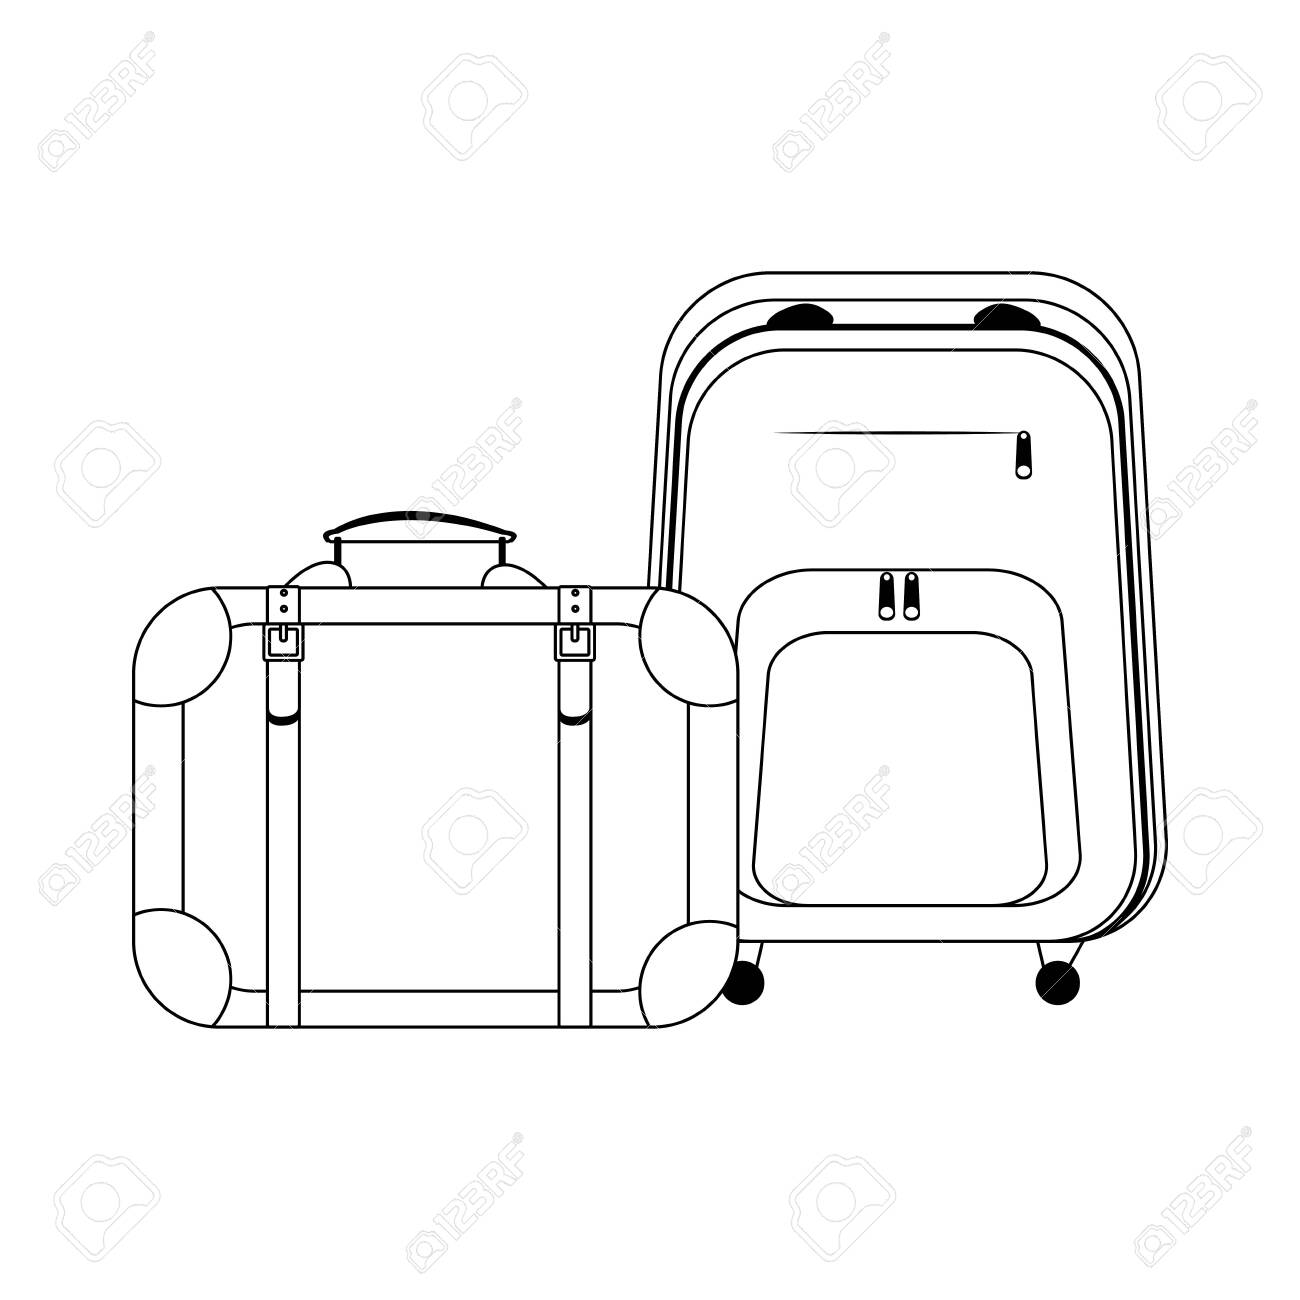 travel suitcase and backpack icon over white background, vector illustration - 133622180